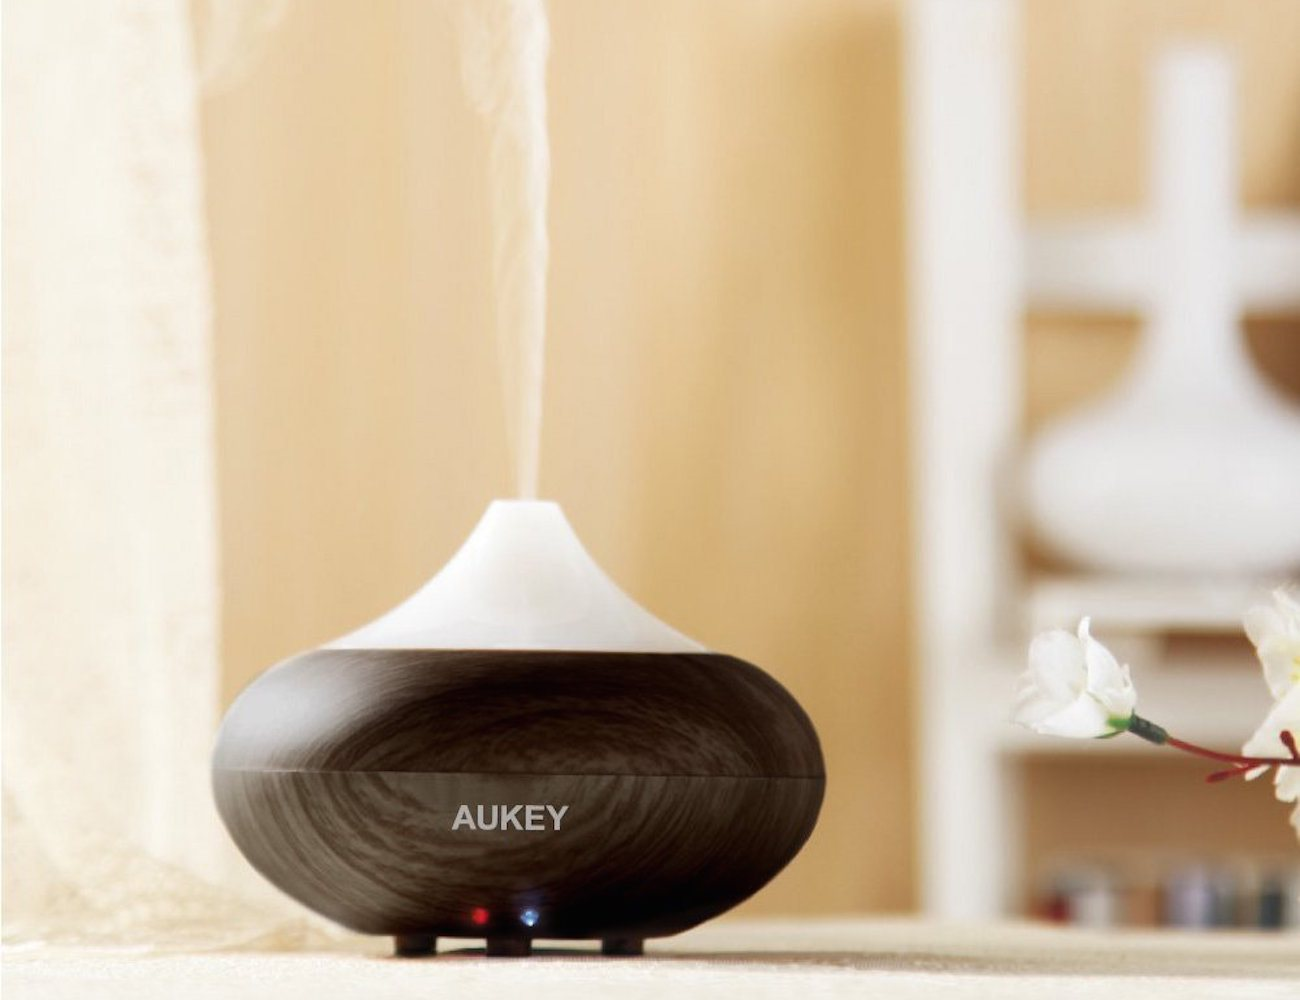 Aukey Electric Aromatherapy Essential Oil Diffuser 187 Review